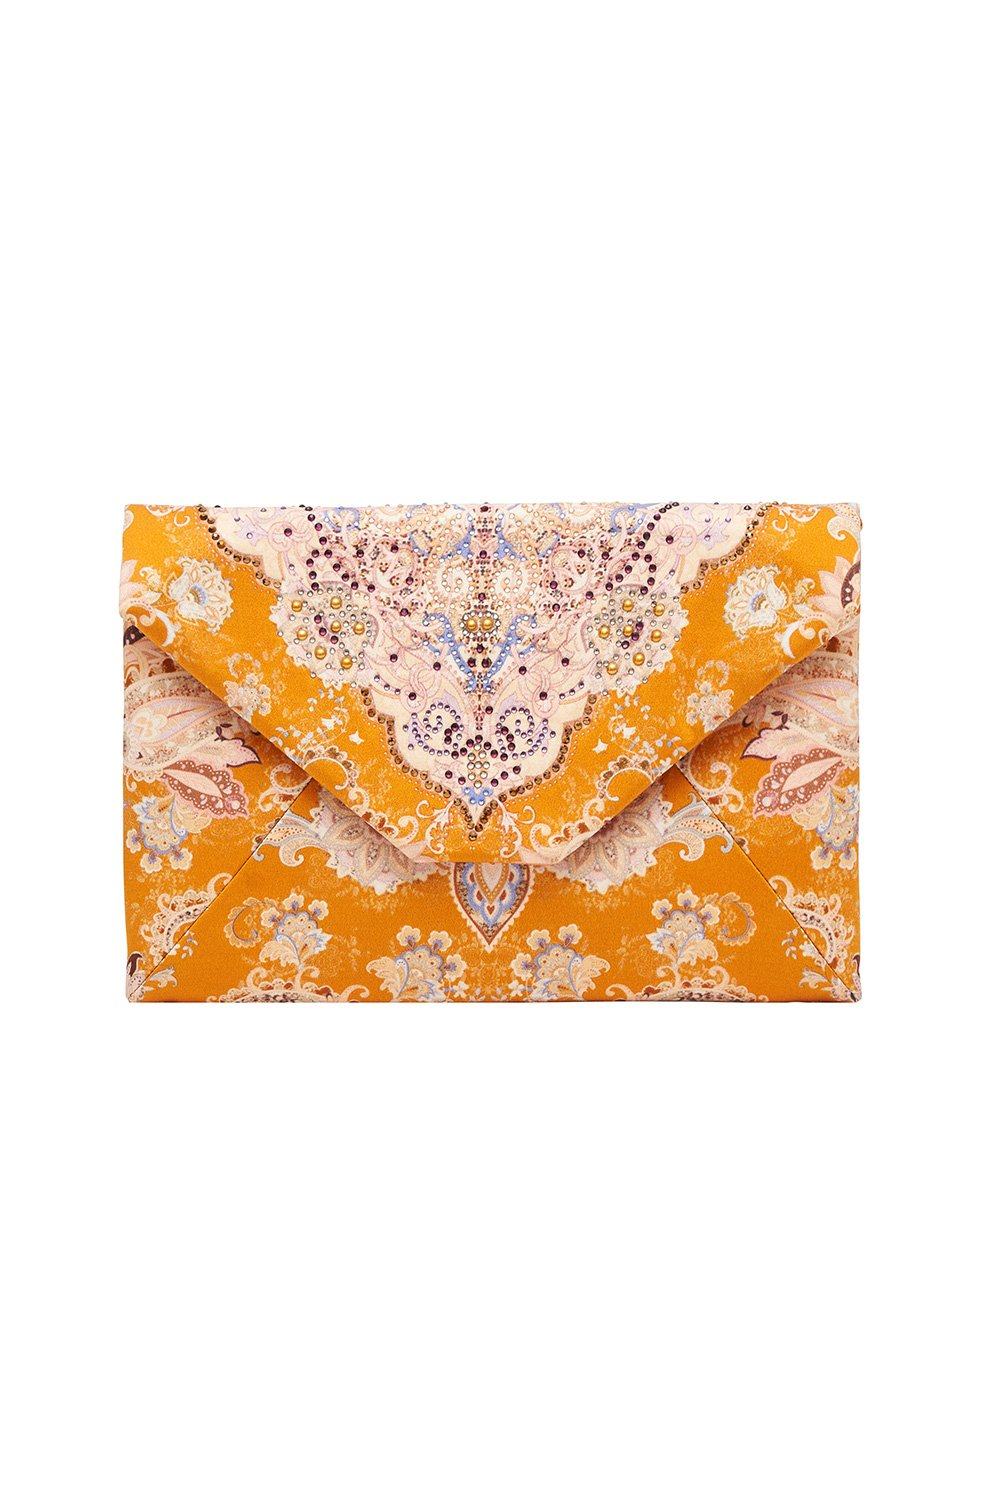 ENVELOPE CLUTCH MARRAKESH MAIDEN